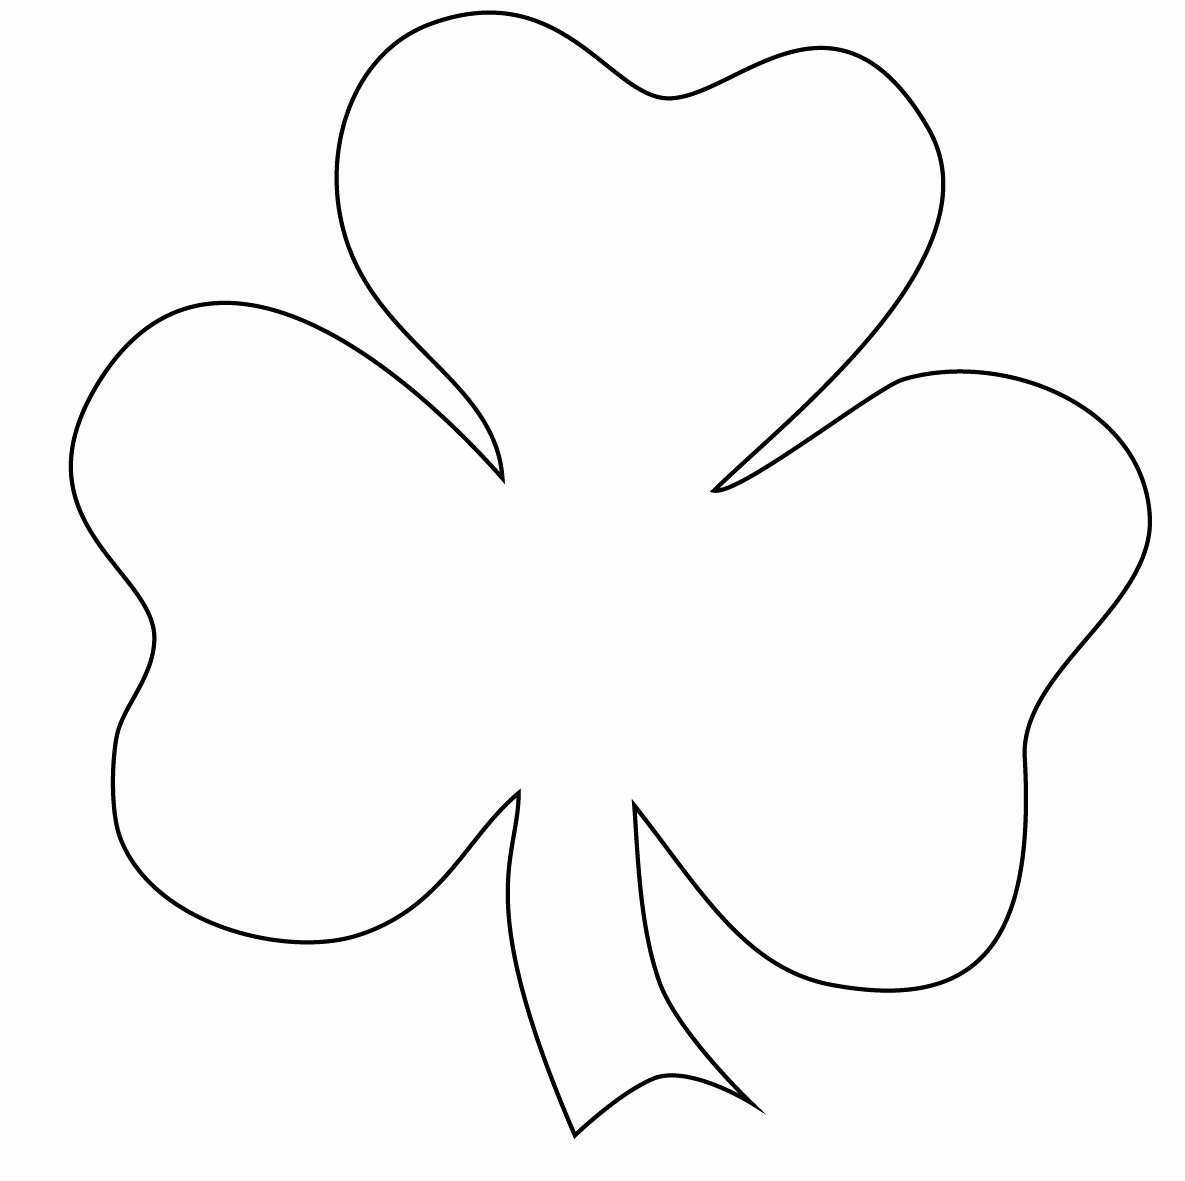 Shamrock Pictures to Print Beautiful Free Printable Shamrock Coloring Pages for Kids